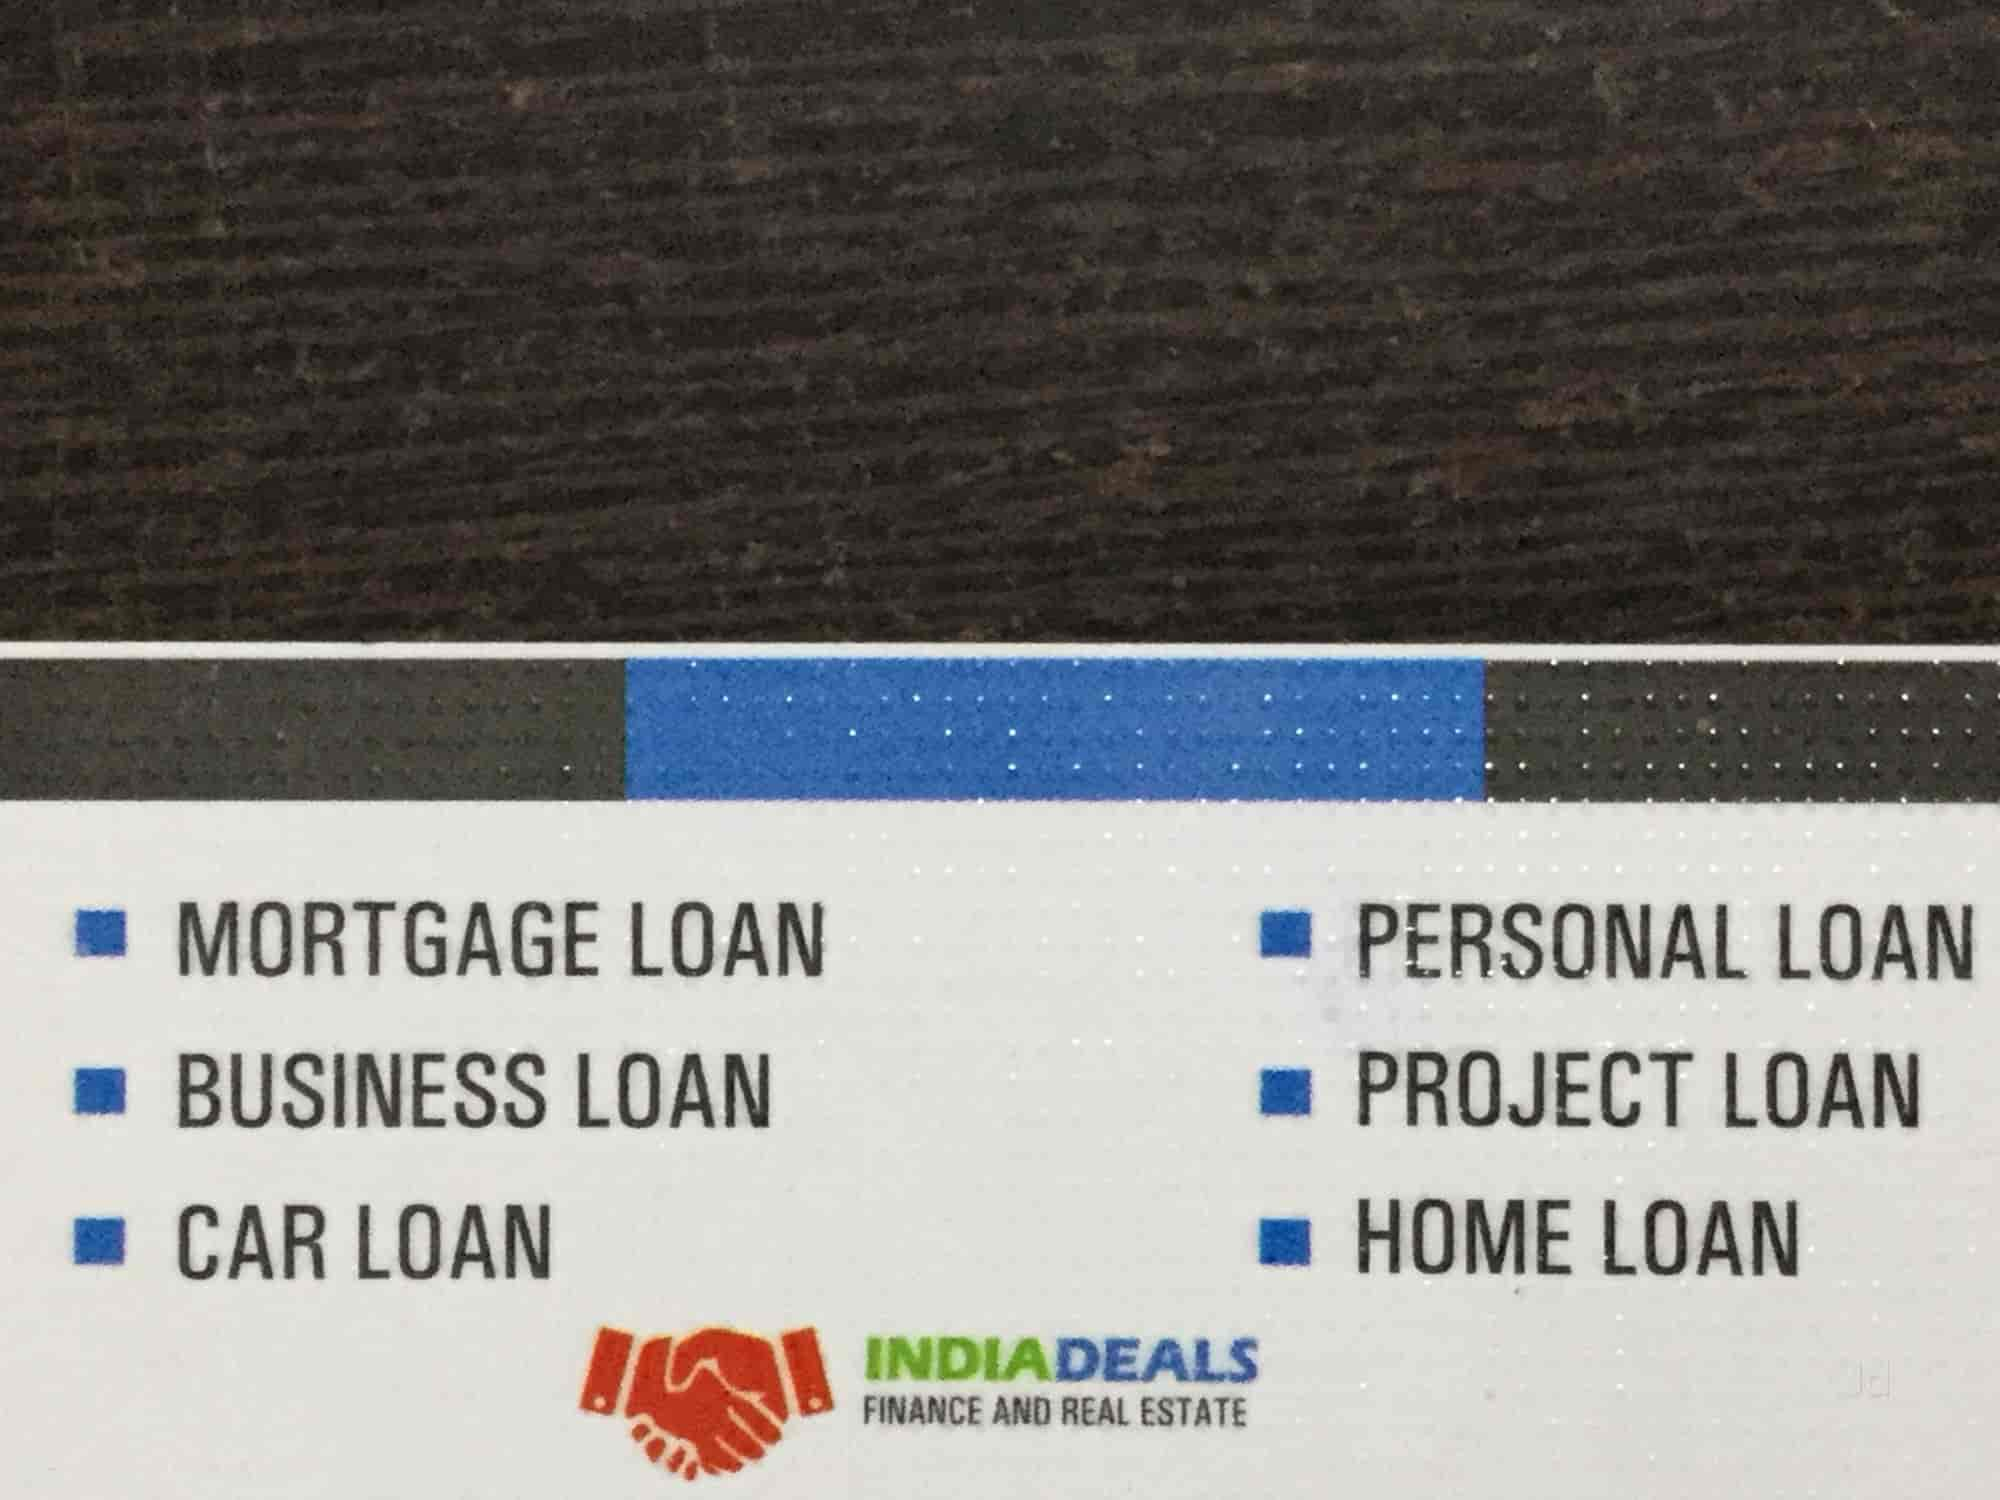 INDIA Deals Finance And Real Estate, Dindoli - Personal Loans in